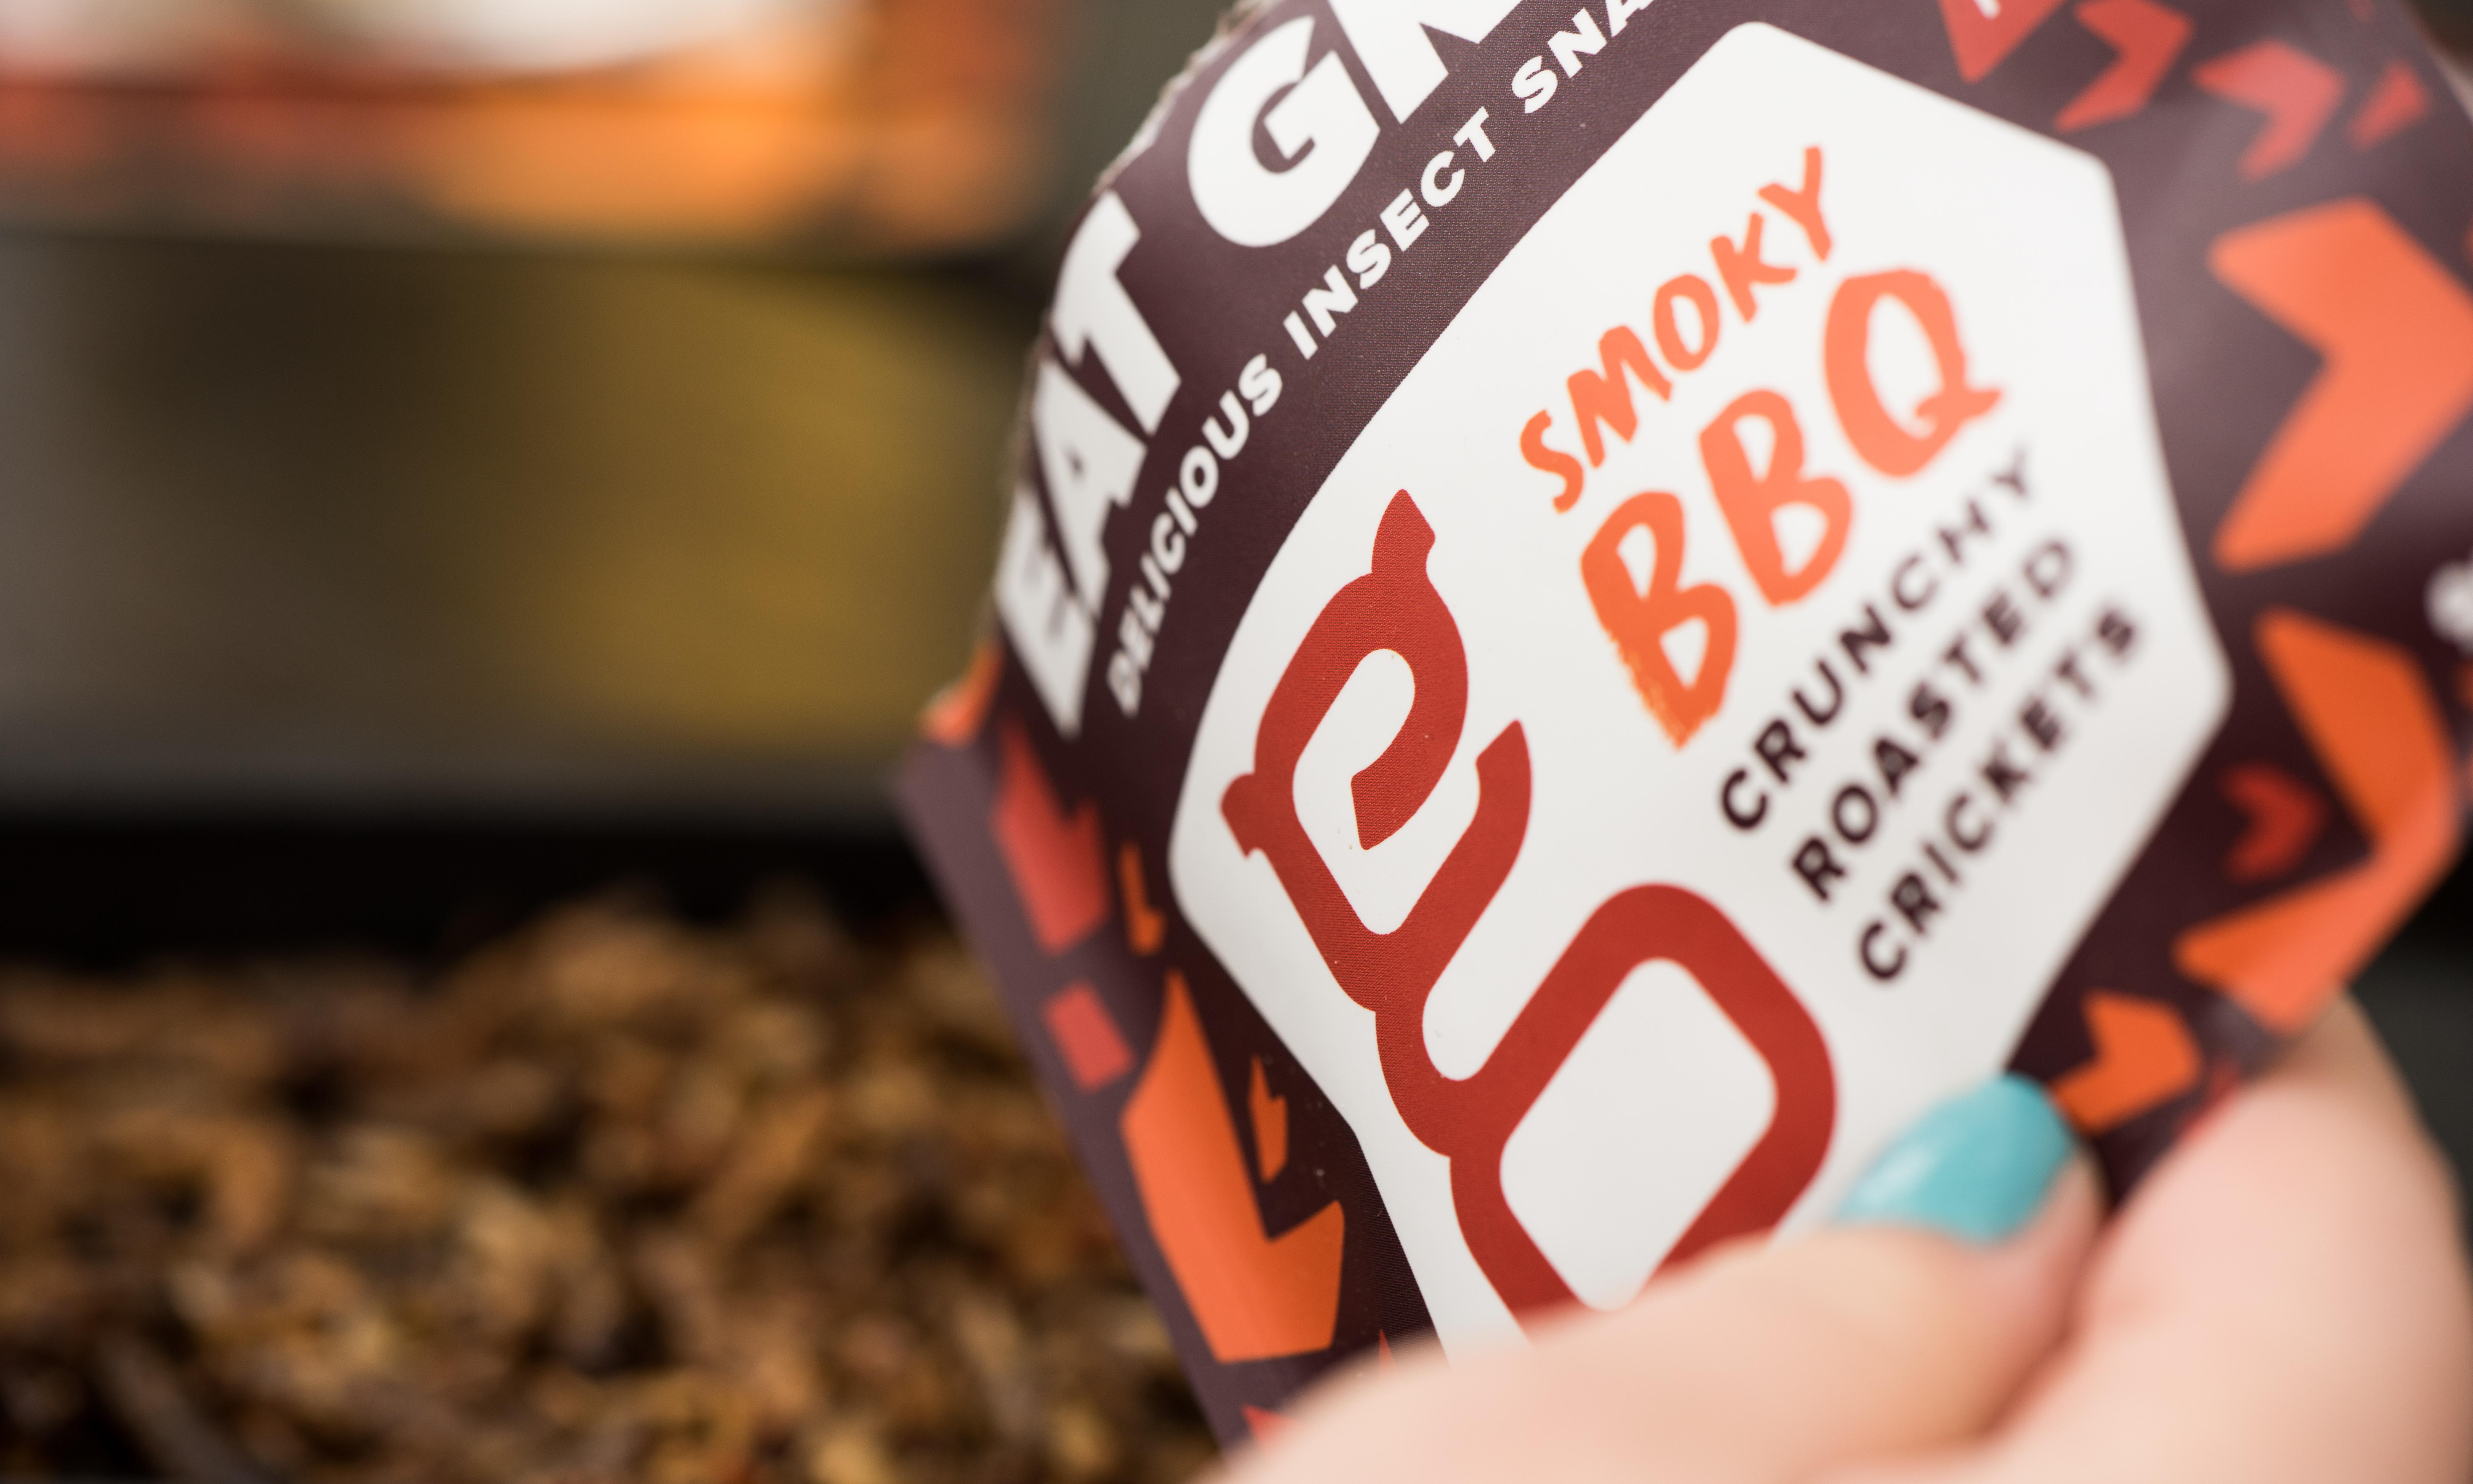 Bug grub: Sainsbury's to stock edible insects on shelves in a UK first